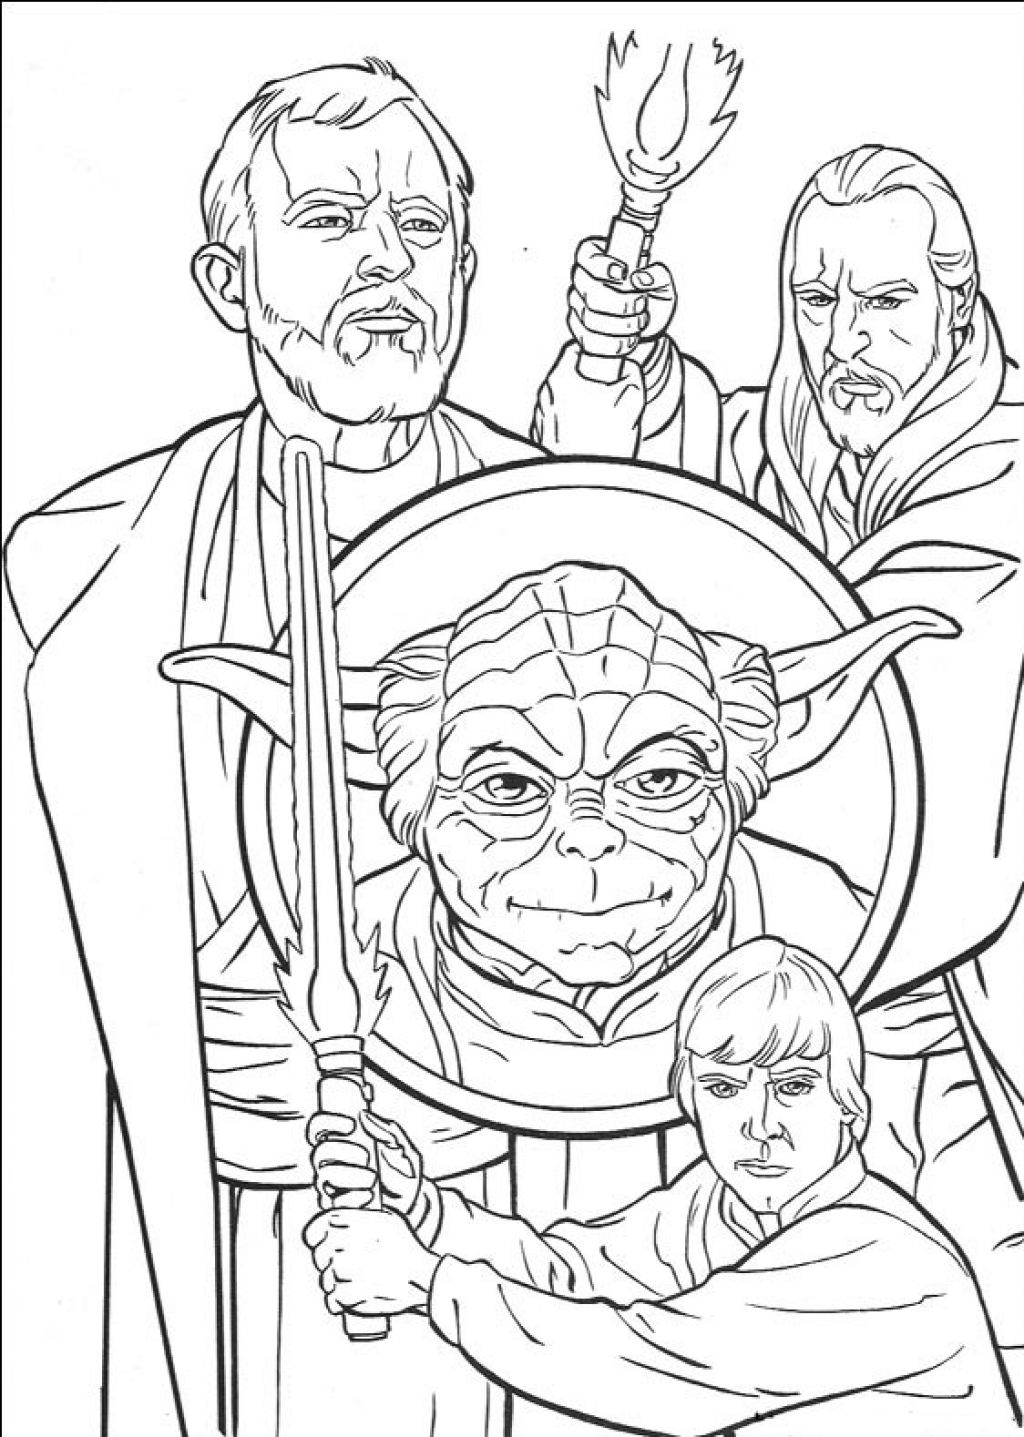 Coloring Pages Star Wars Free Printable Download Of Fresh Star Wars Coloring Pages to Print